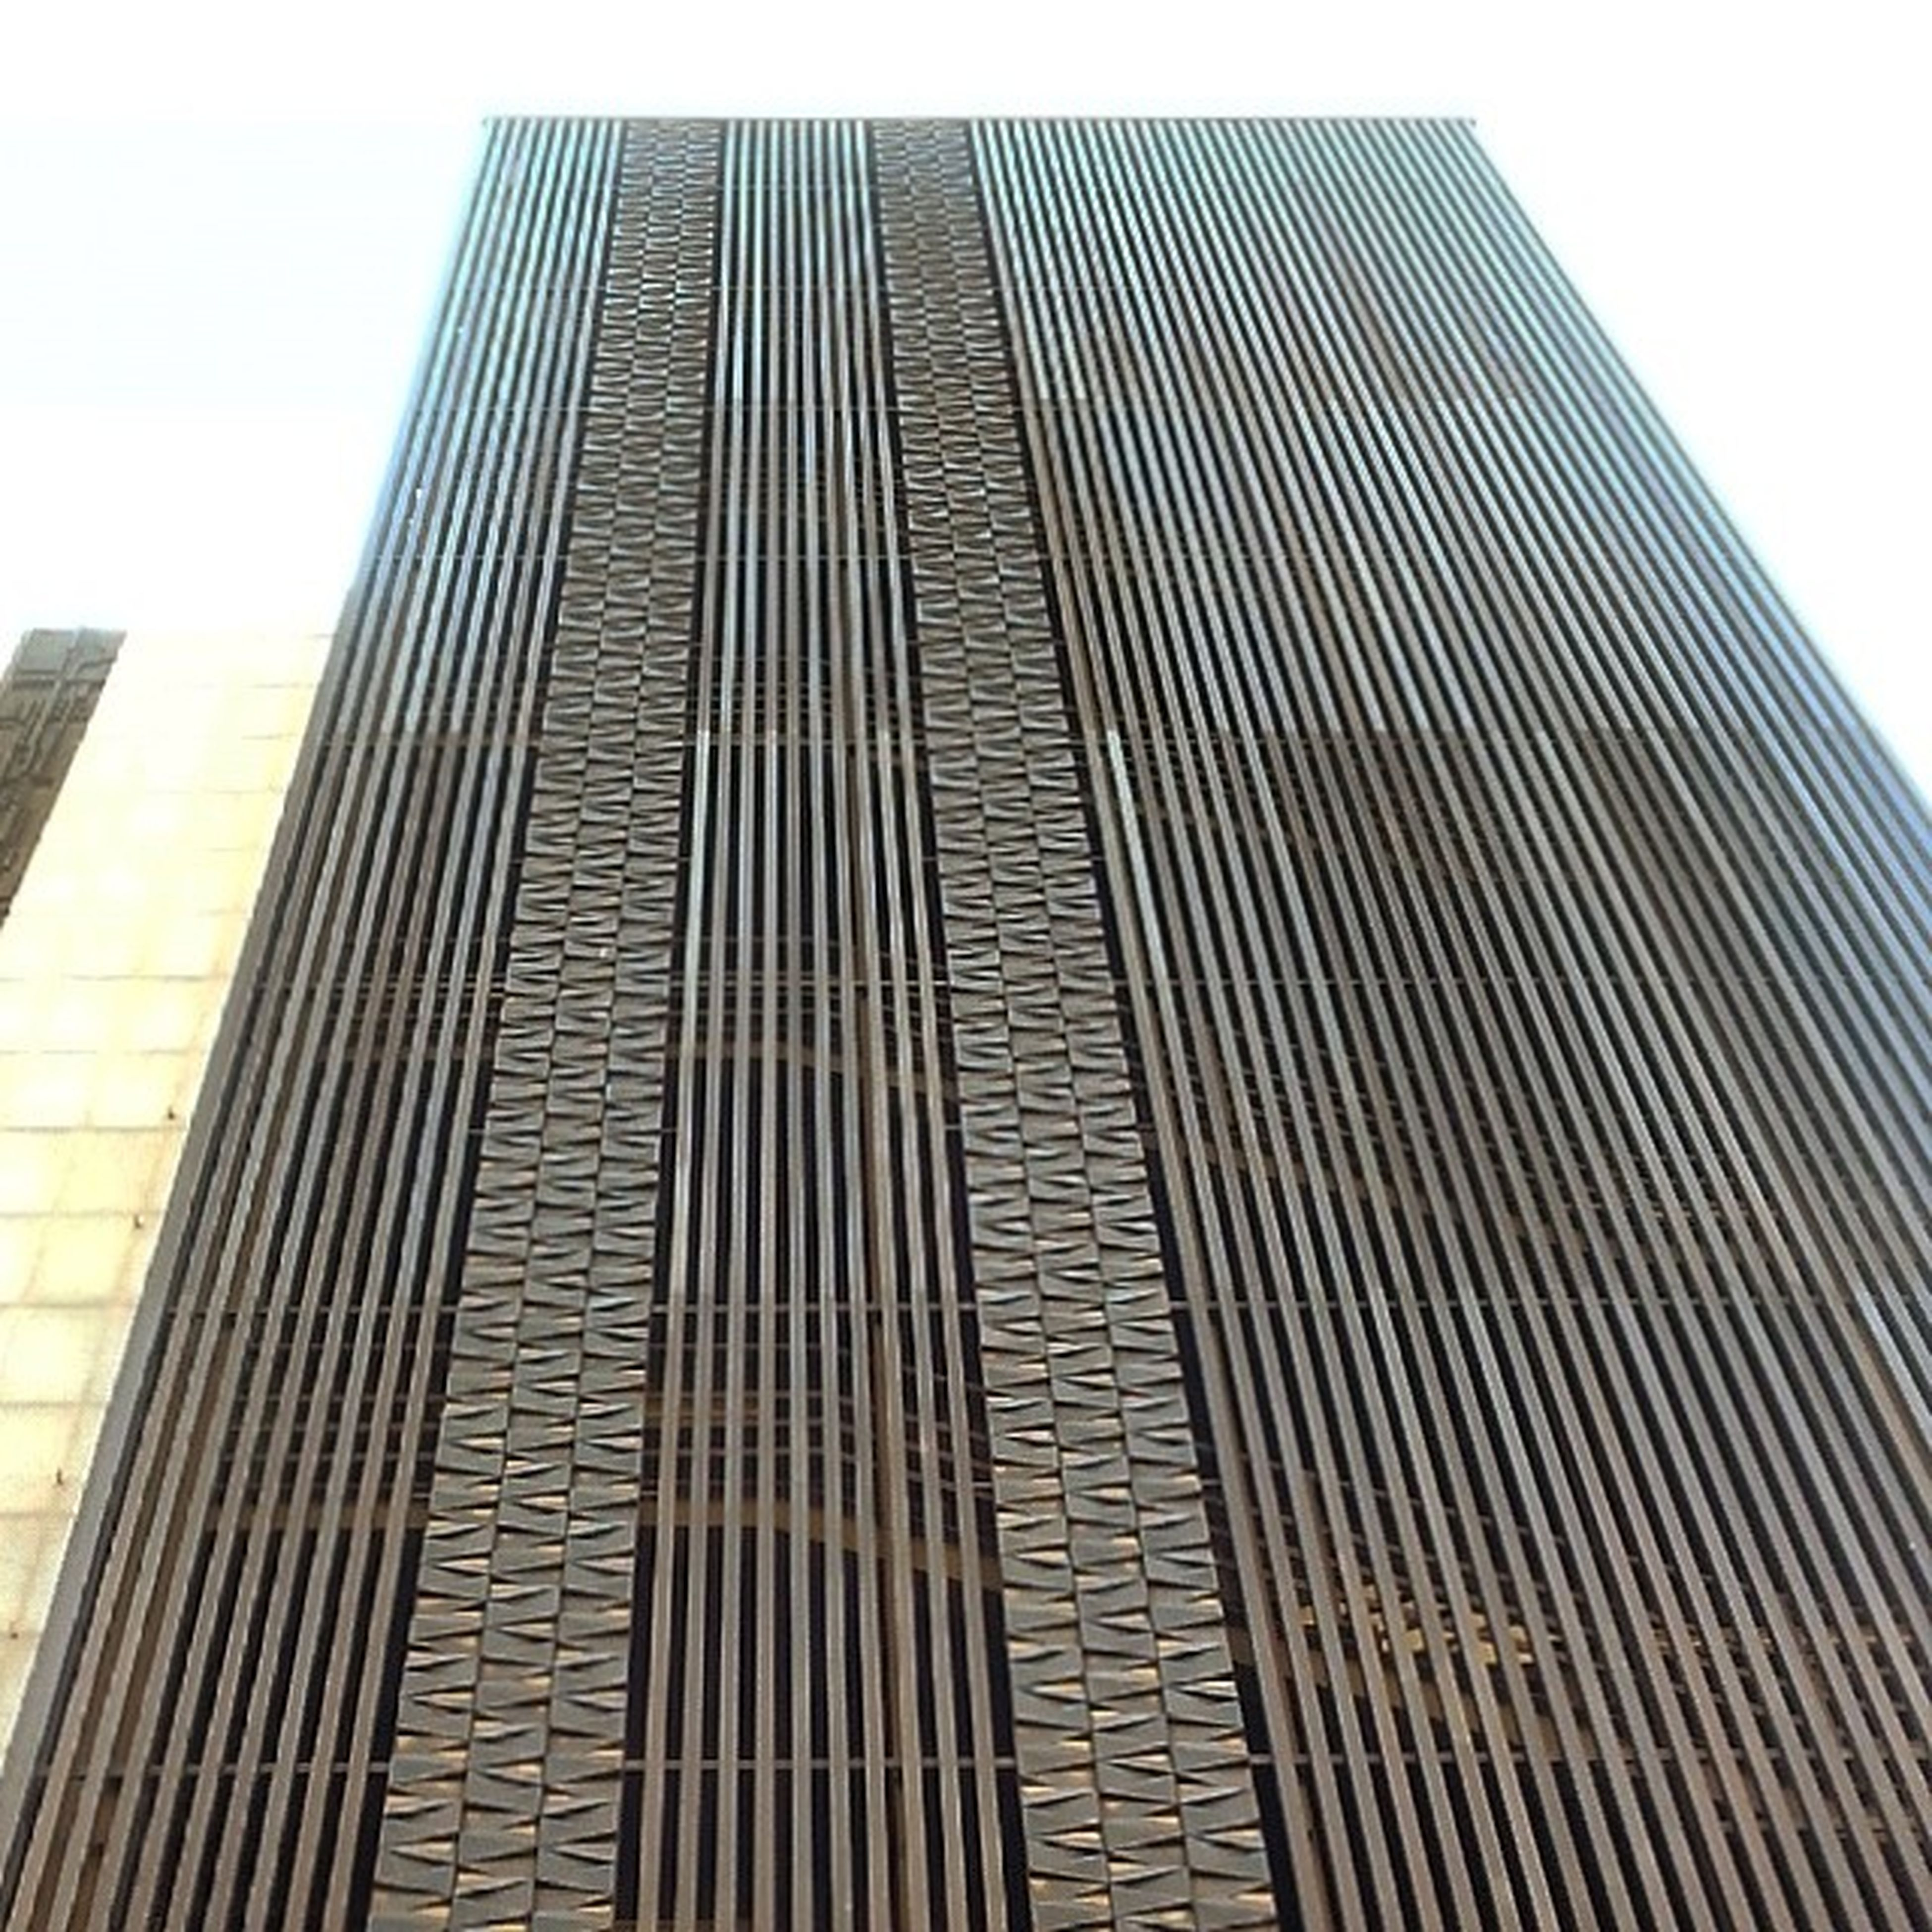 architecture, built structure, building exterior, skyscraper, low angle view, modern, tall - high, office building, city, pattern, tower, building, clear sky, repetition, sky, tall, day, no people, outdoors, diminishing perspective